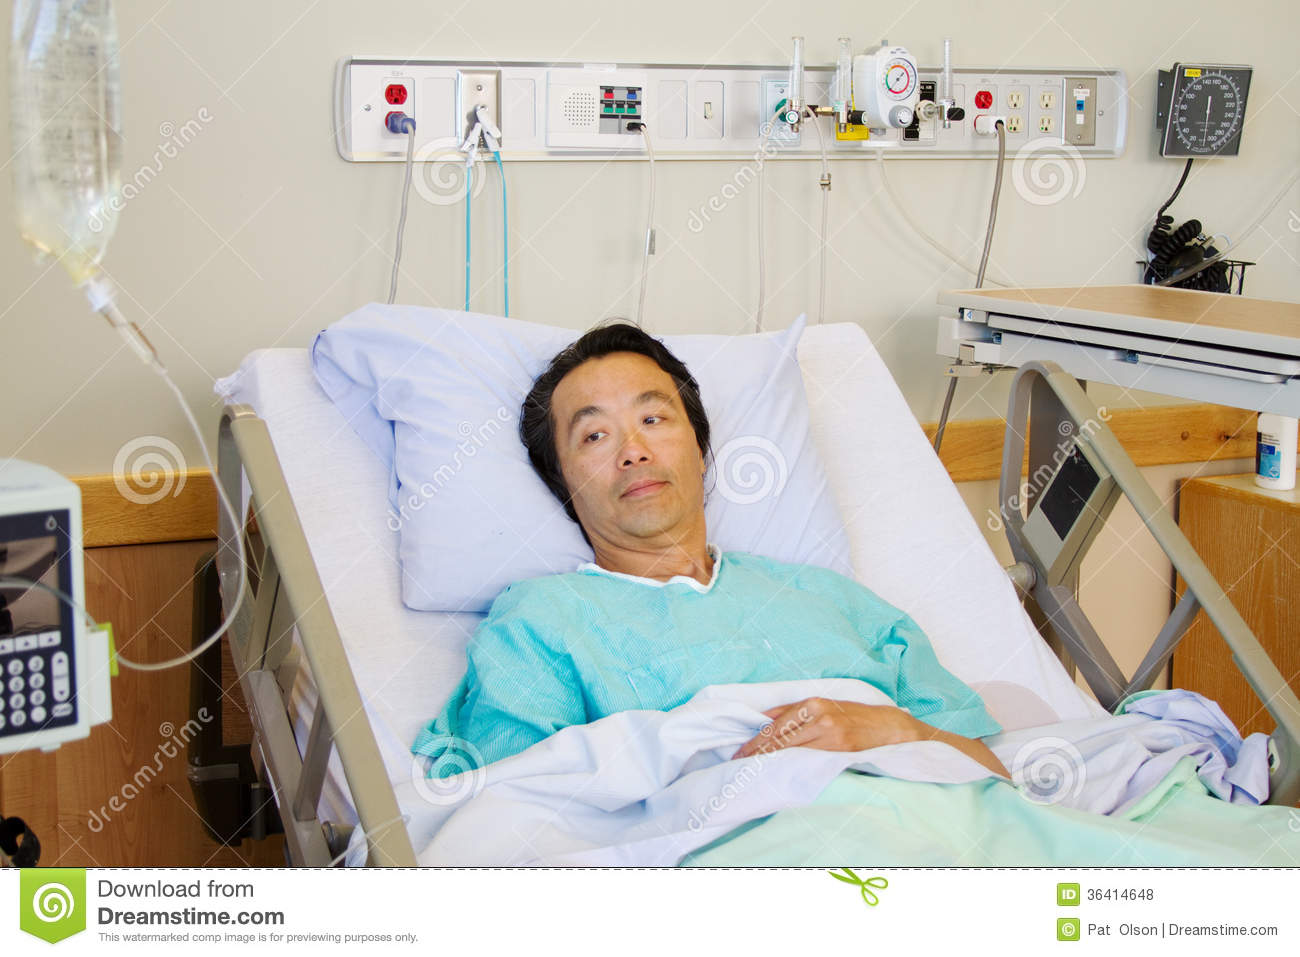 Patient In Hospital Bed : Ill Patient In Hospital Bed Royalty Free Stock Photos - Image ...